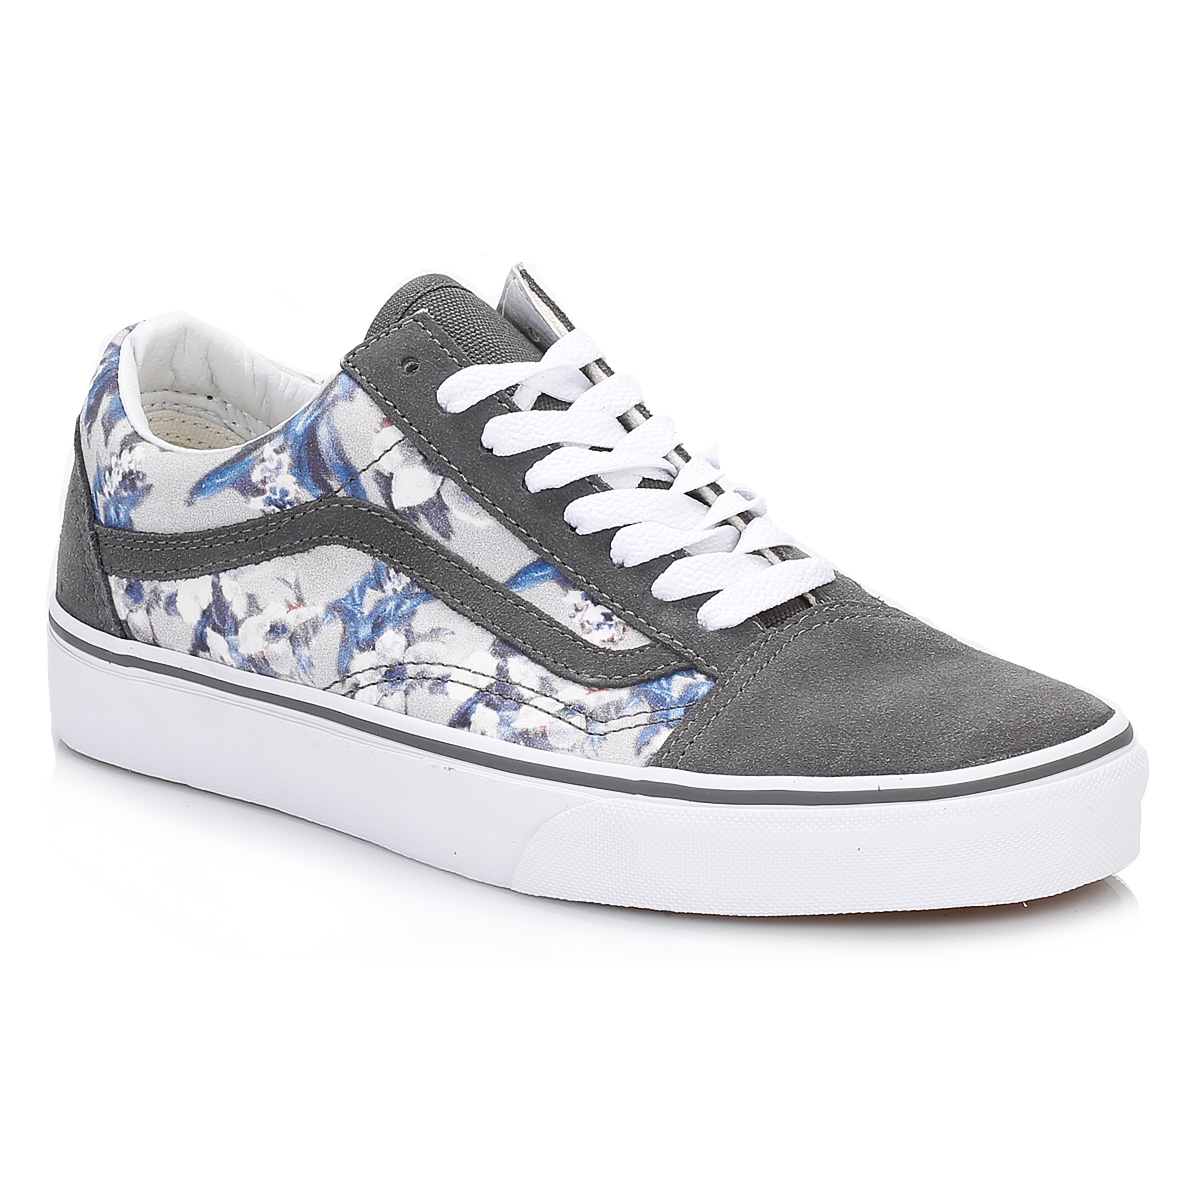 Van Shoes Grey And White